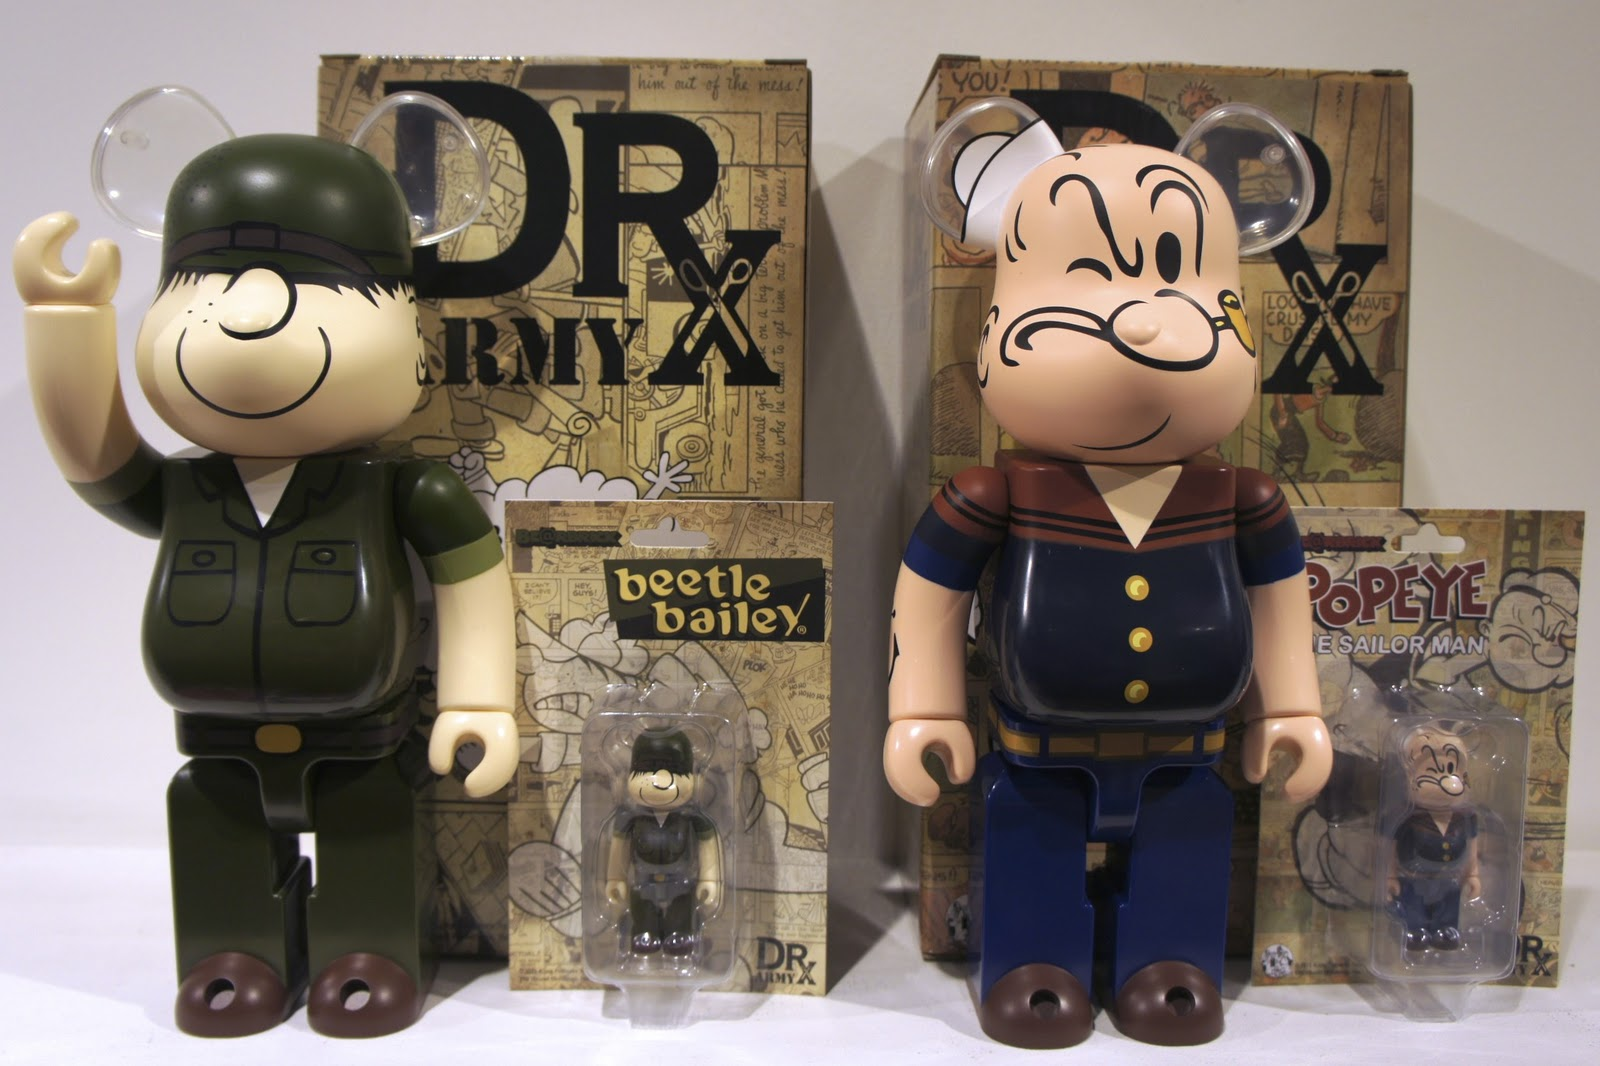 db4d9f1b0ec6 i - first person singular  Beetle Bailey   Popeye Bearbricks